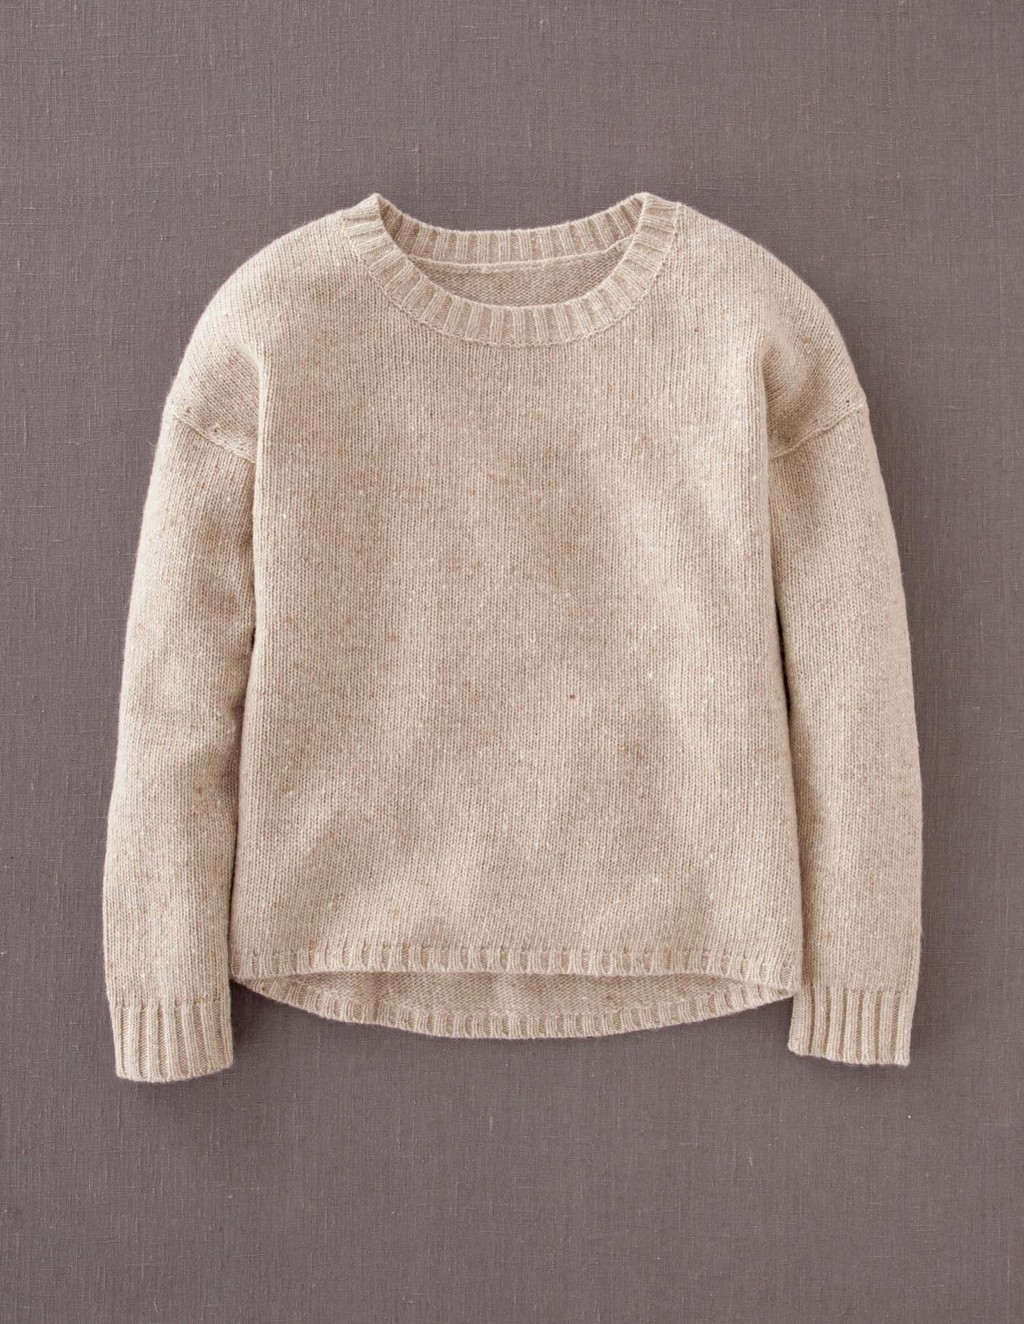 Skye Jumper - pattern: plain; style: standard; predominant colour: ivory/cream; occasions: casual; length: standard; fibres: wool - mix; fit: standard fit; neckline: crew; sleeve length: long sleeve; sleeve style: standard; texture group: knits/crochet; pattern type: knitted - fine stitch; season: a/w 2013